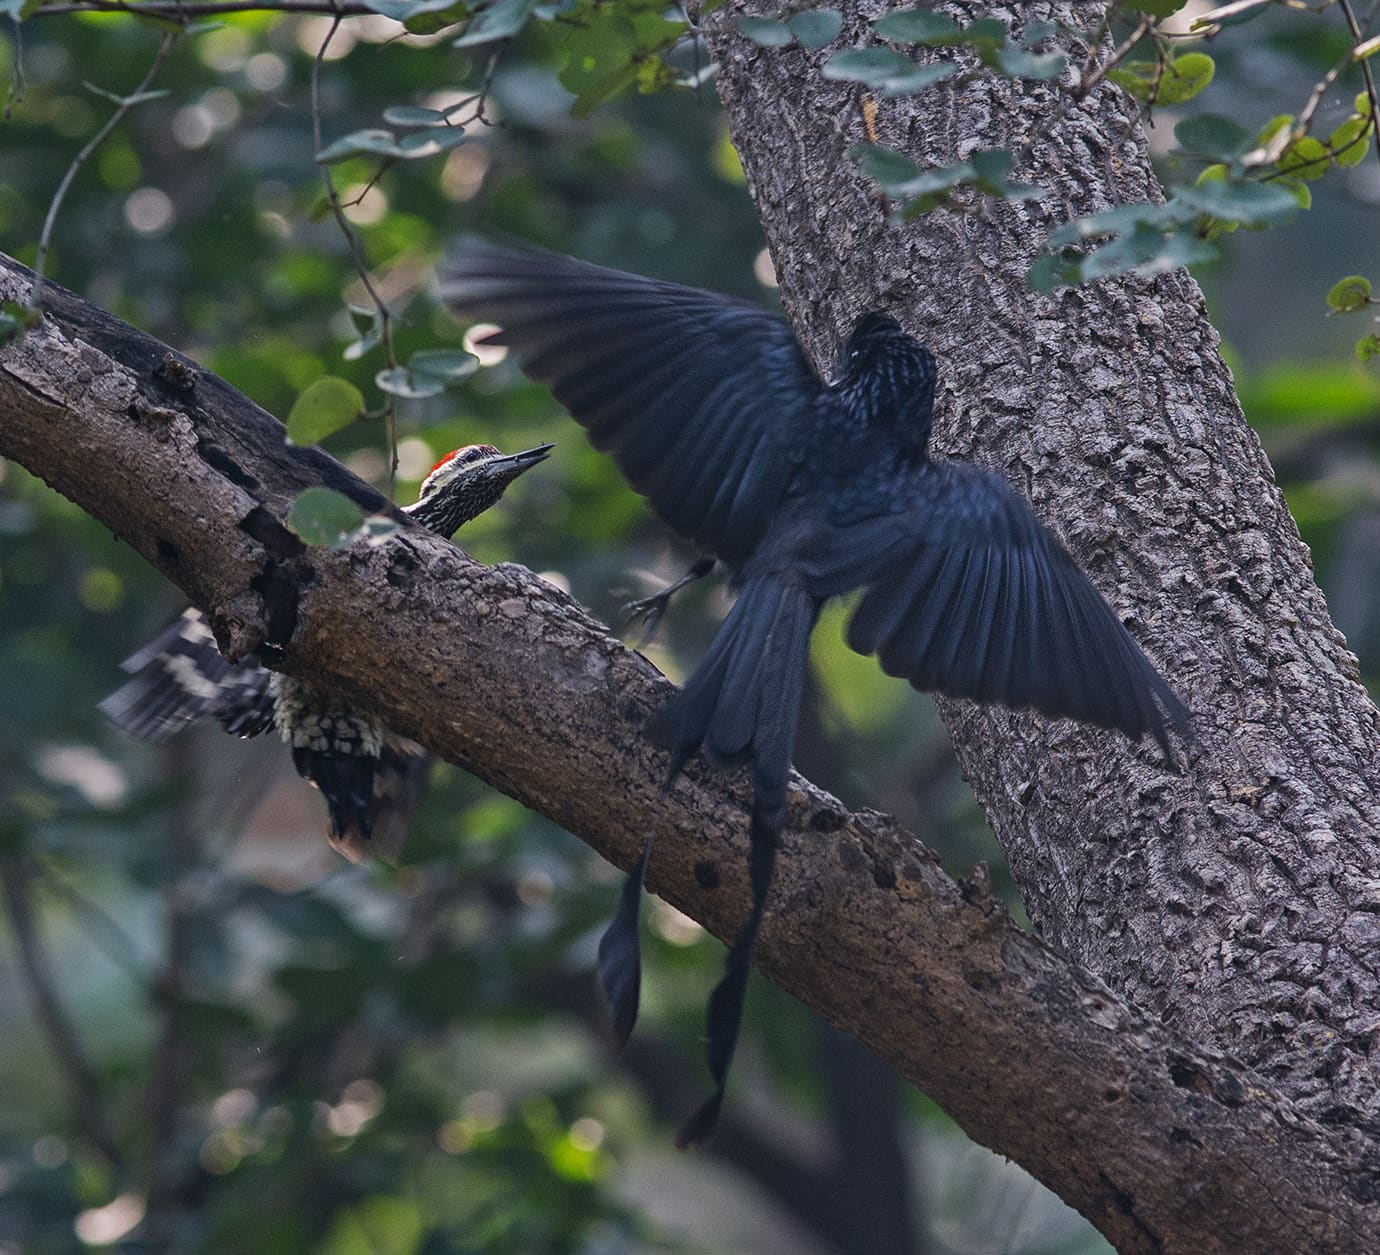 Antics and Ambush of the Greater Racket-Tailed Drongo